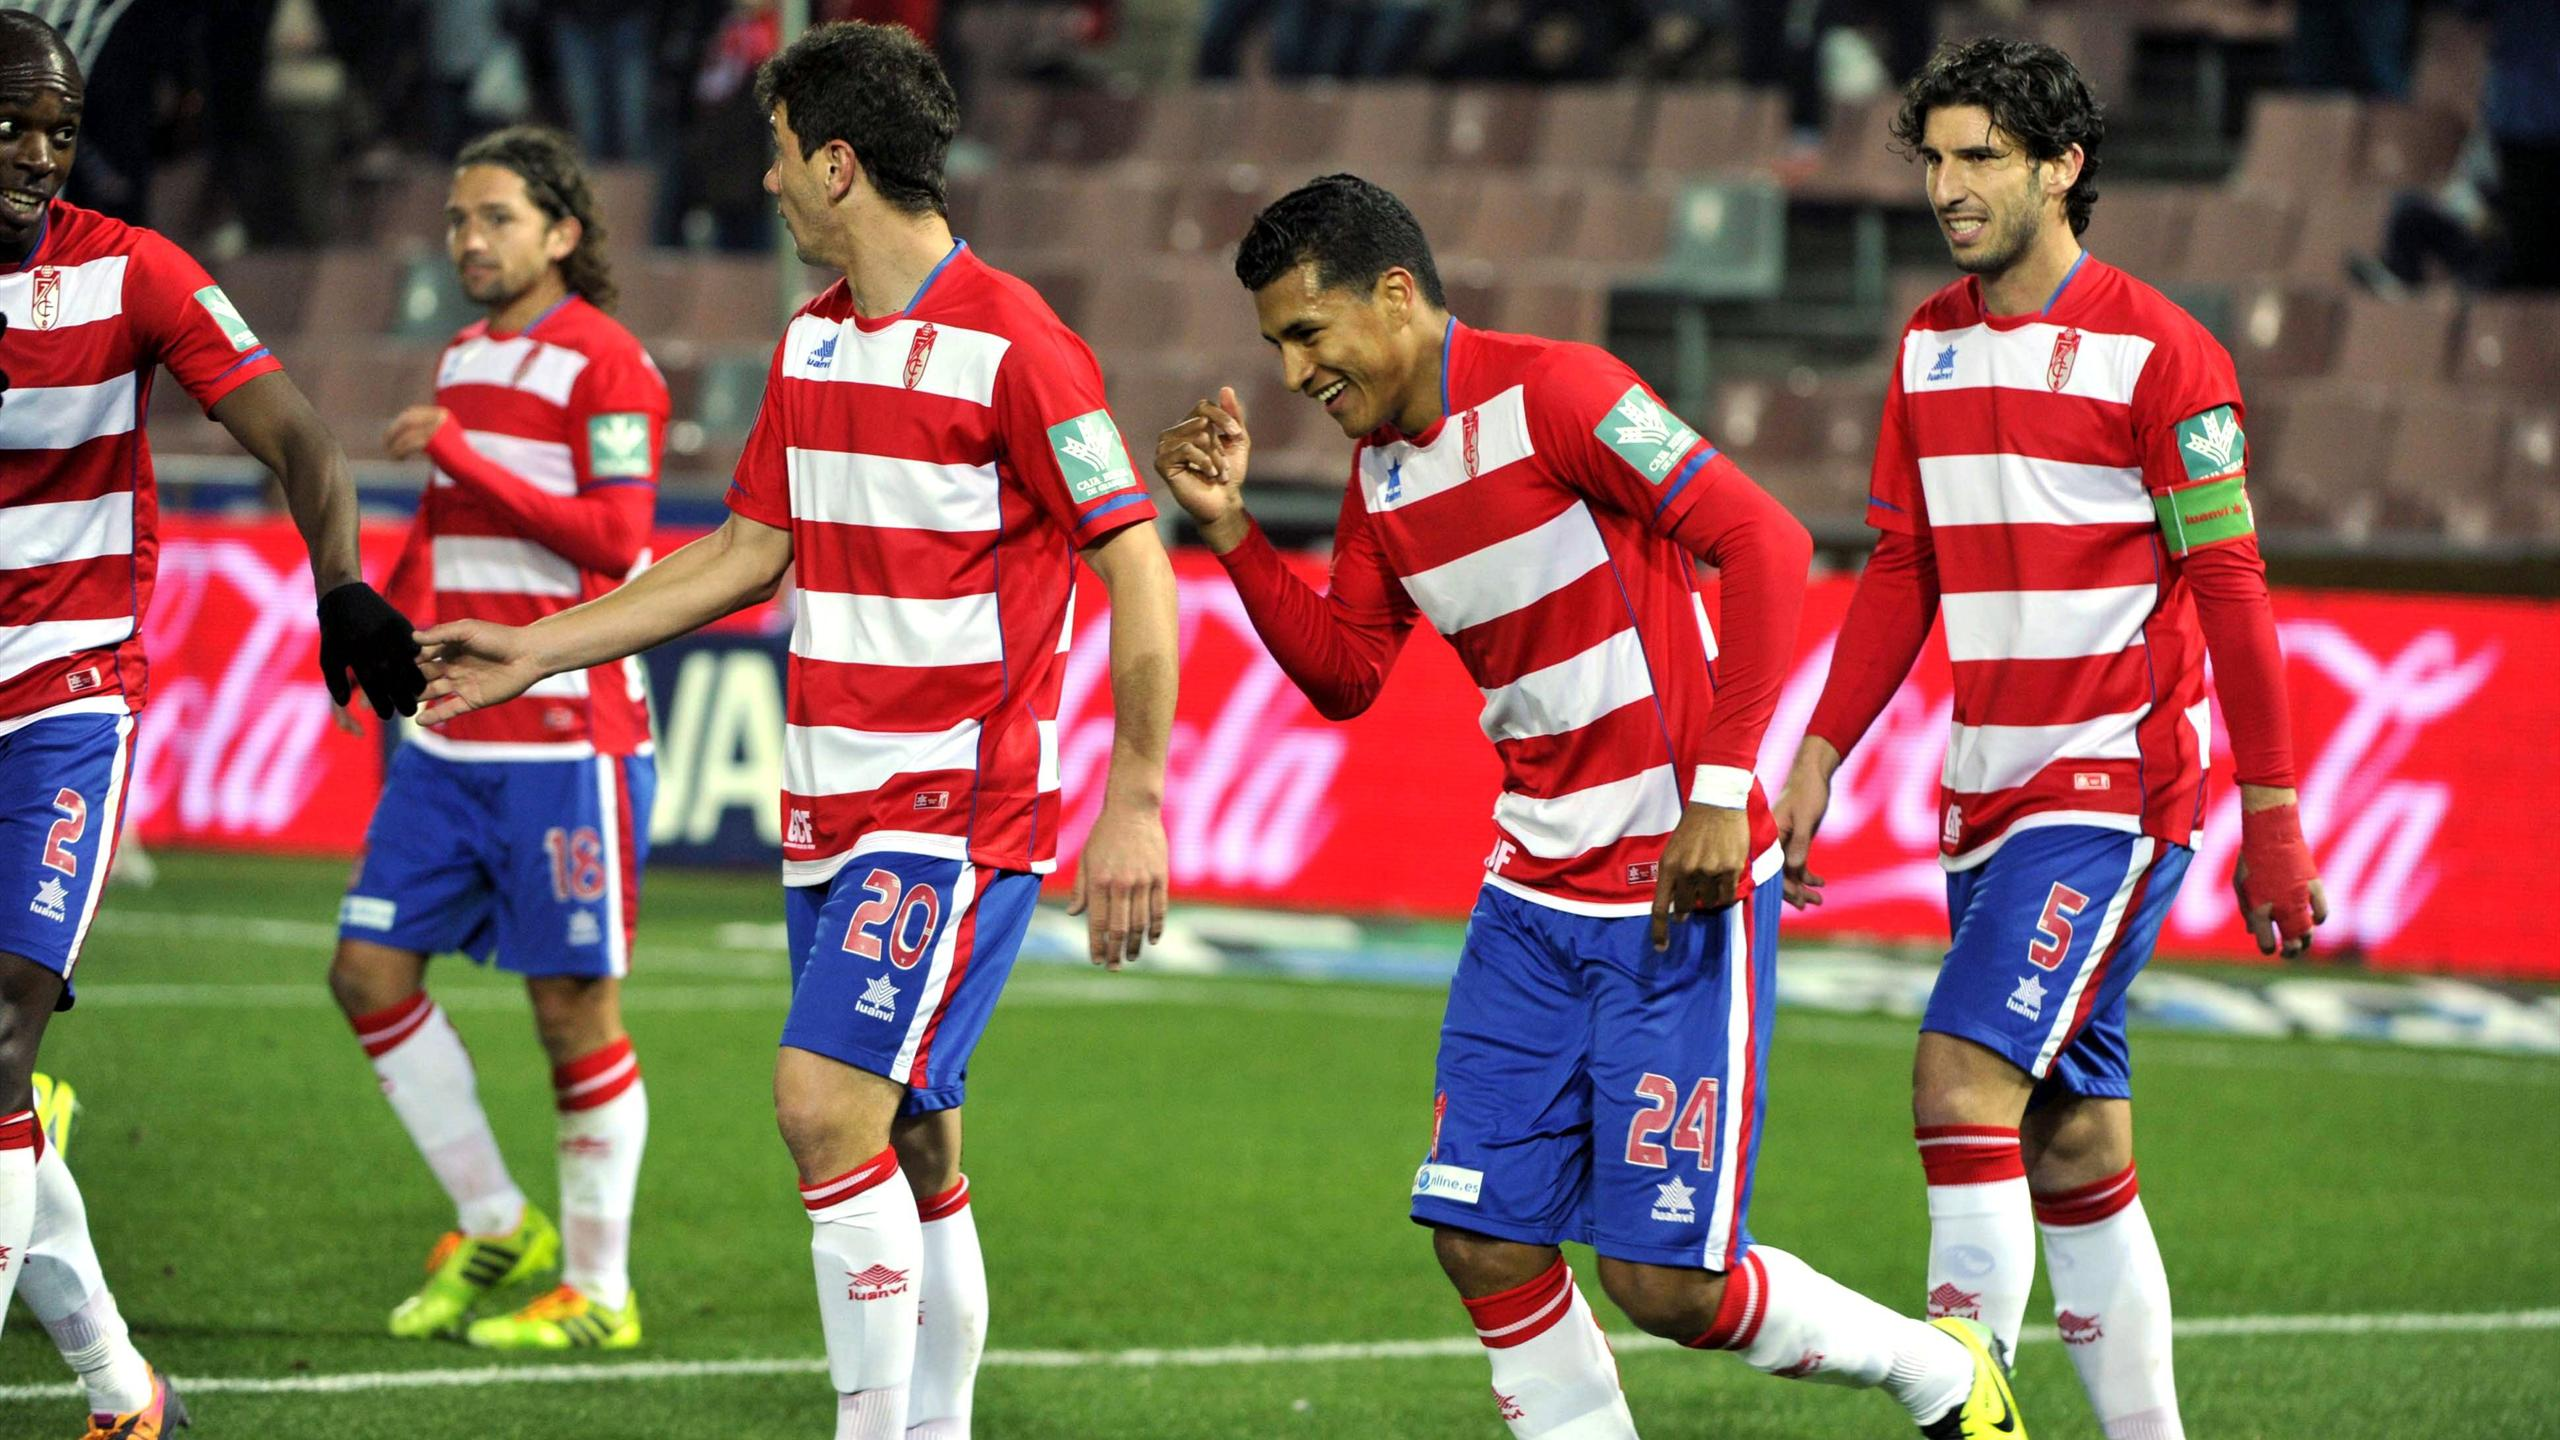 Video: Granada vs Elche